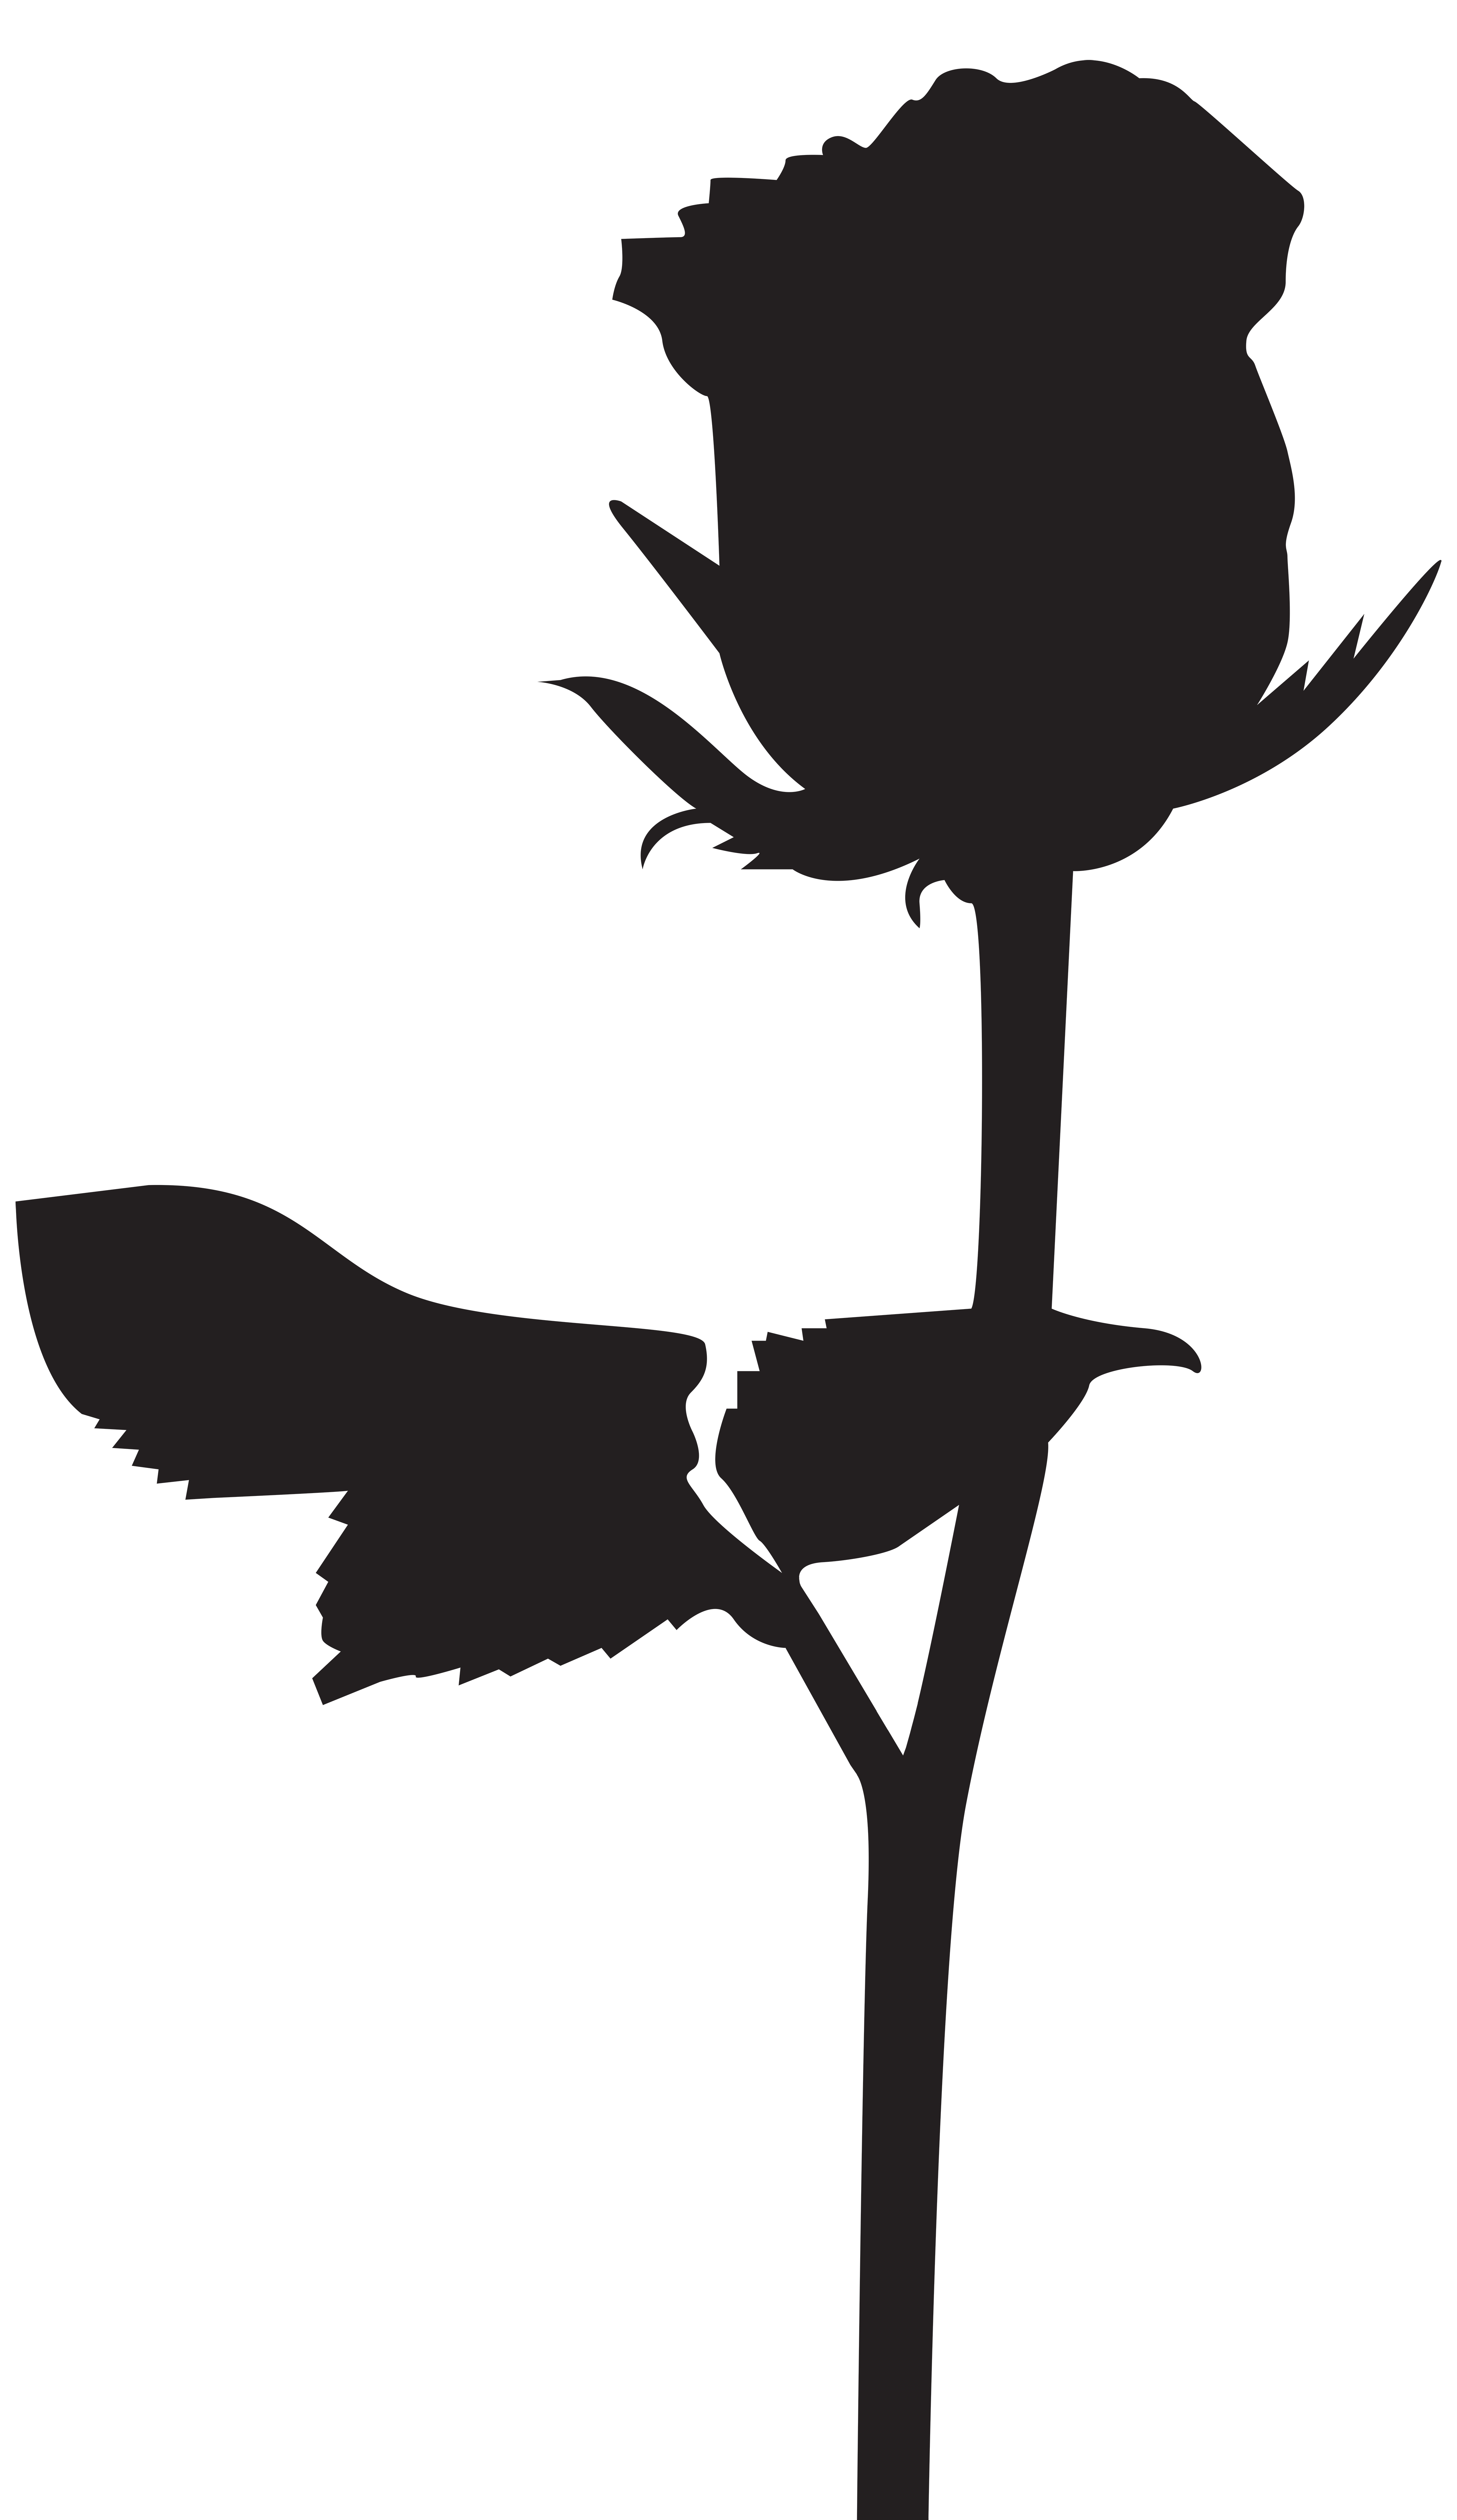 4624x8000 Rose Silhouette Png Transparent Clip Art Imageu200b Gallery